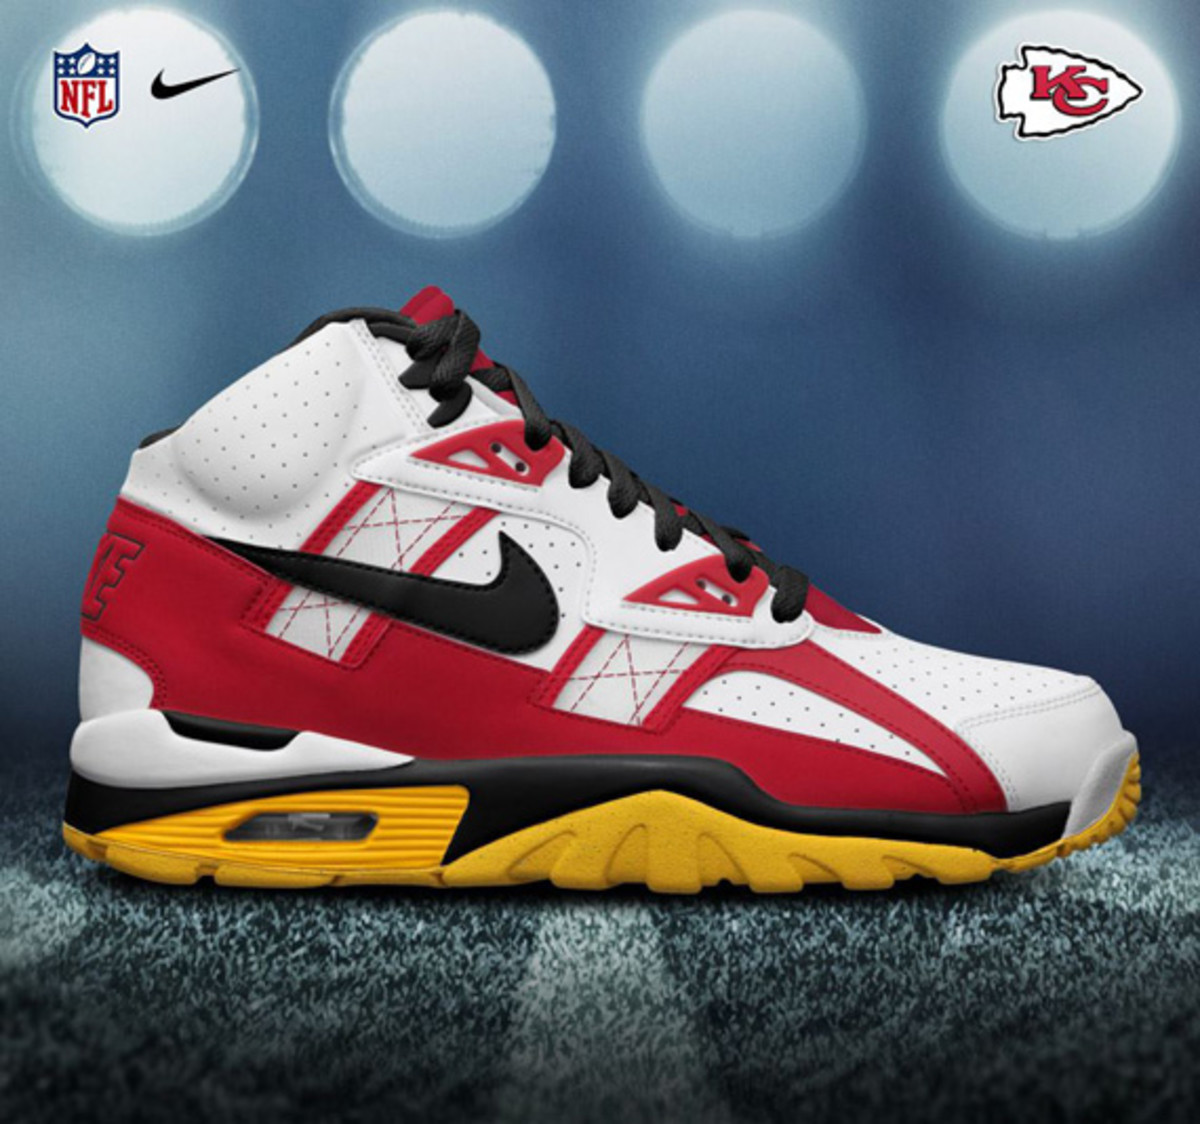 nike-football-Air-Trainer-SC-NFL-2012-nfl-draft-pack-kansas-city-chiefs-00